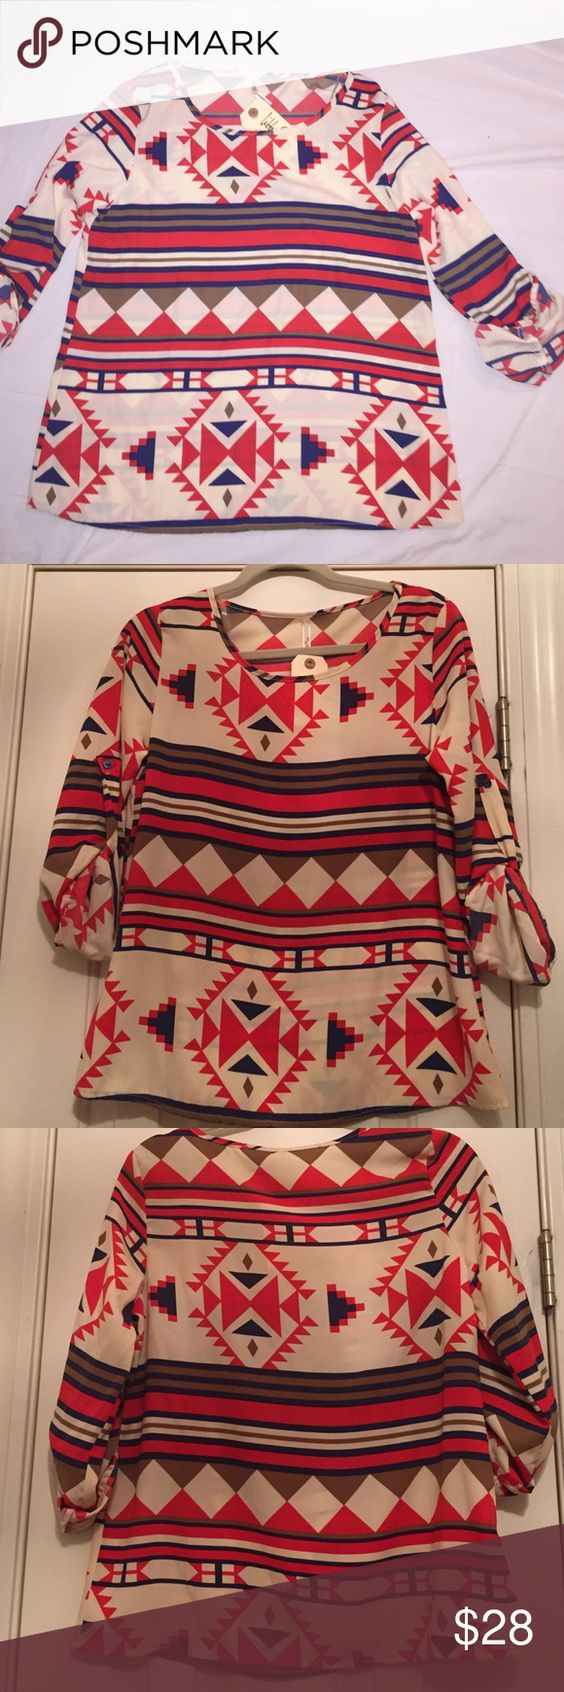 HP 8/24 💥New Aztec print blouse💥 Multi colored, great with jeans. New with tags! Libby Story Tops Blouses